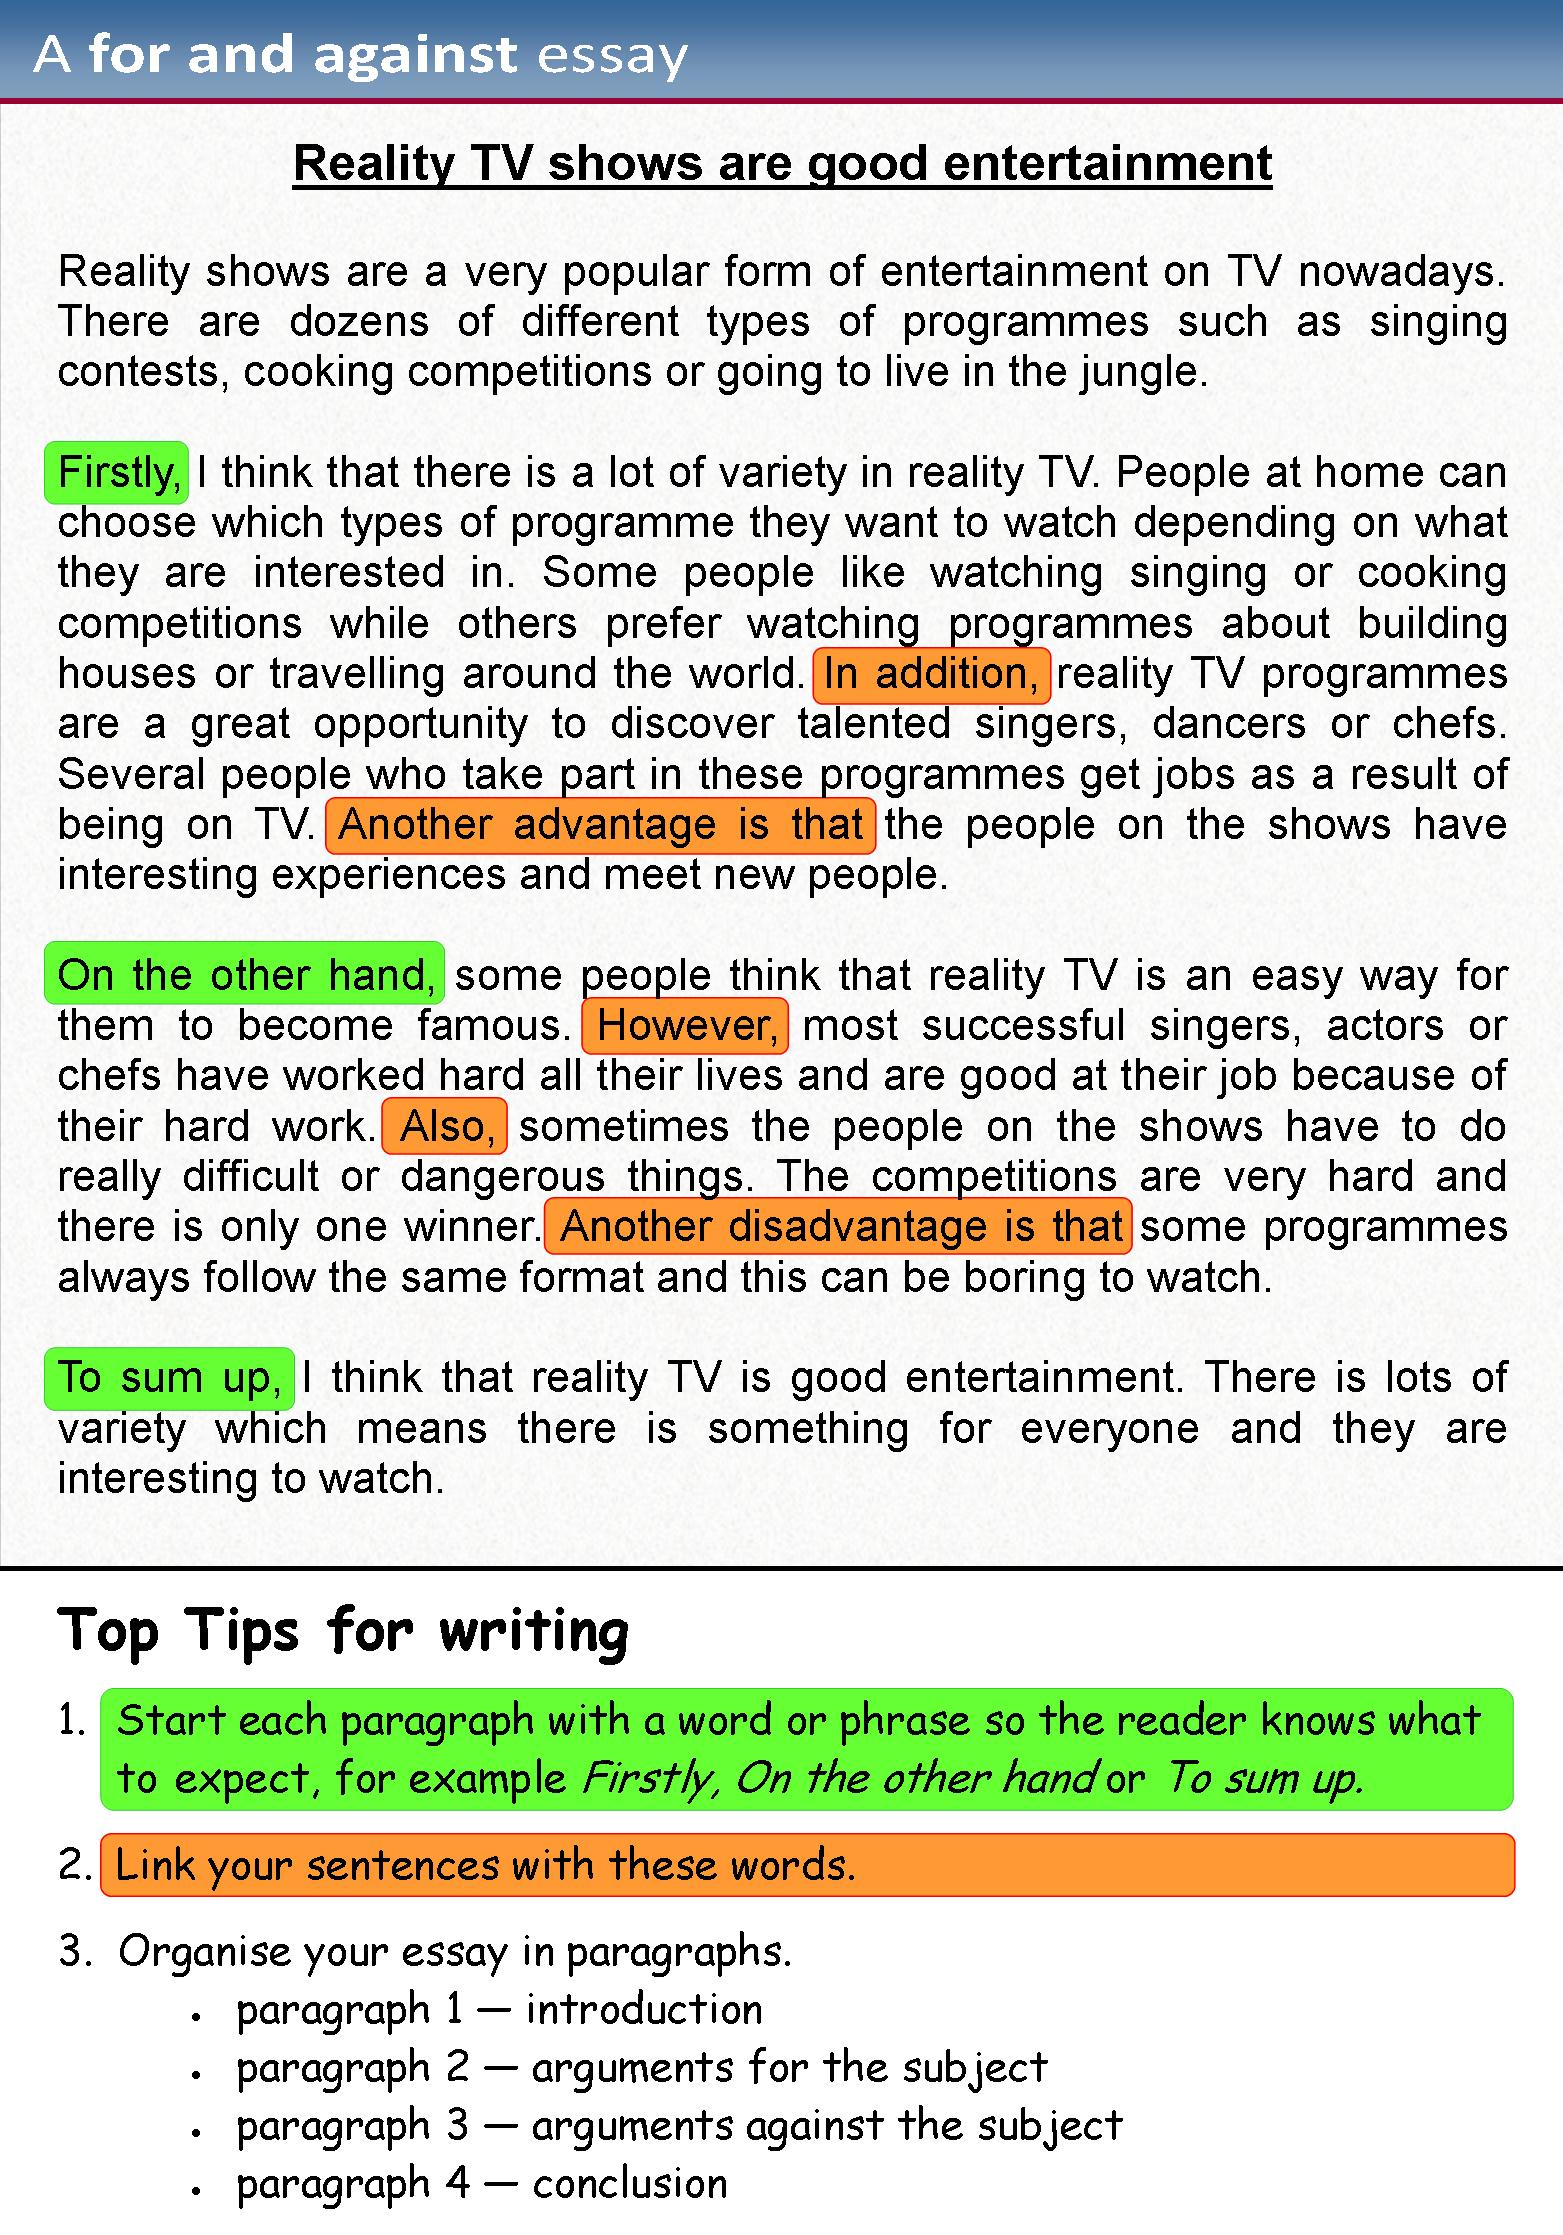 016 For Against Essay 1 Funny Essays Stupendous Examples Composition Topics On School Life Full